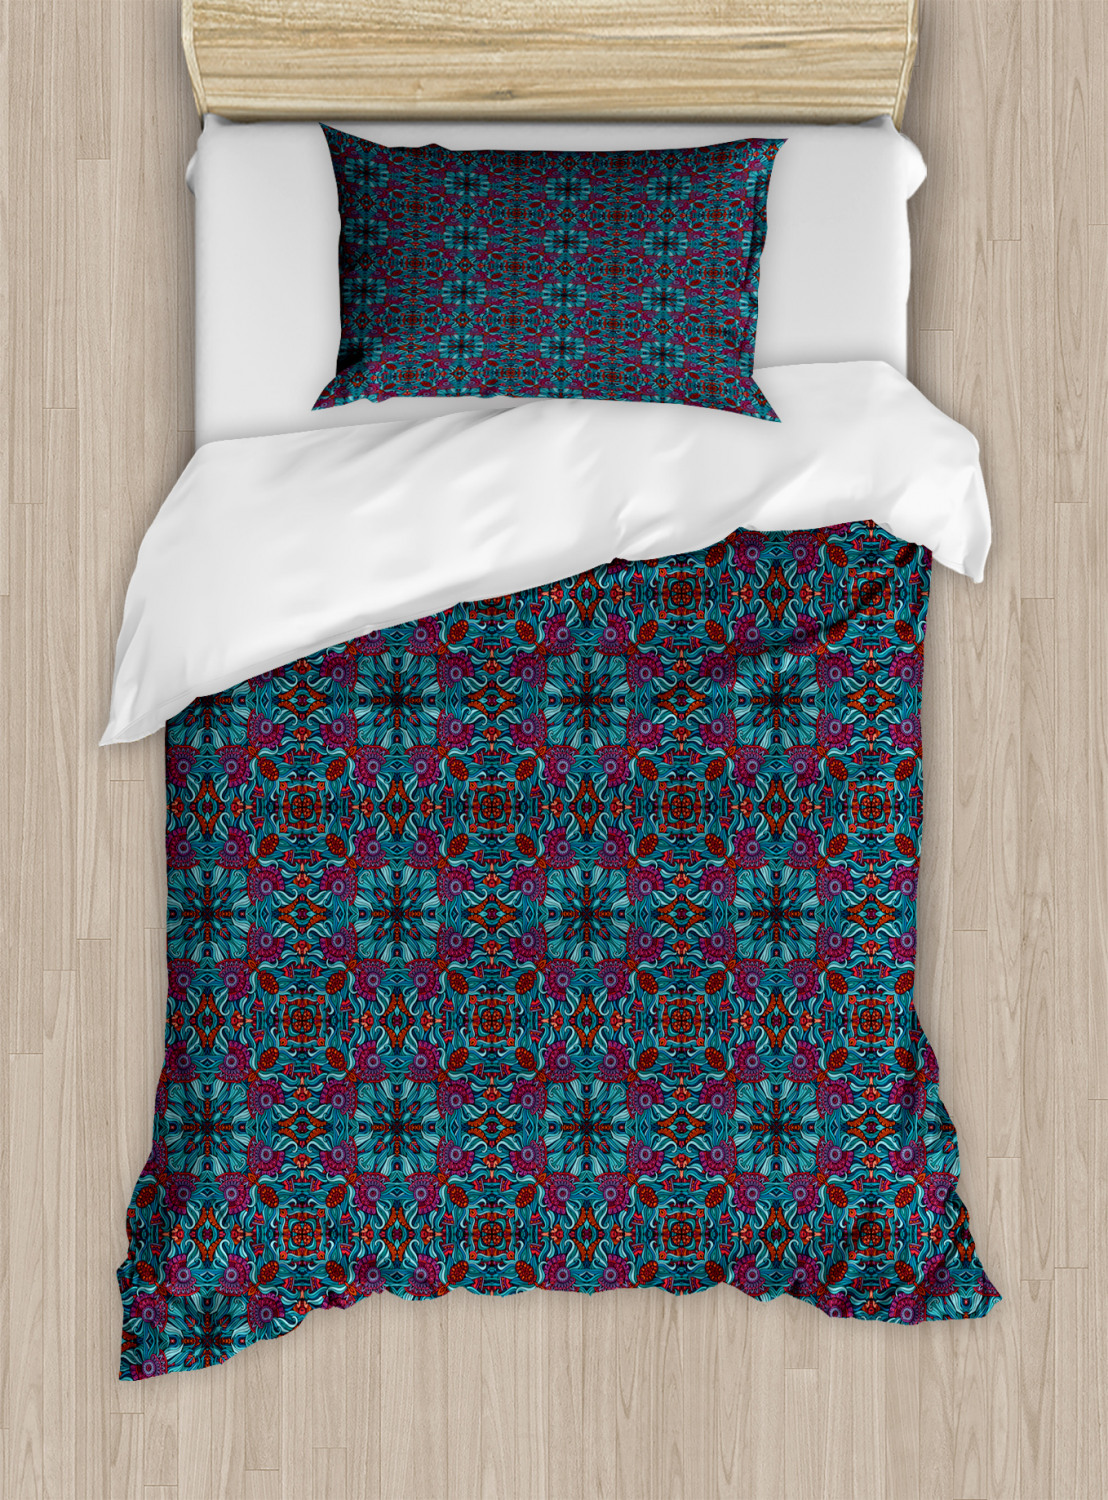 Timeless-Oriental-Duvet-Cover-Set-Twin-Queen-King-Sizes-with-Pillow-Shams thumbnail 34